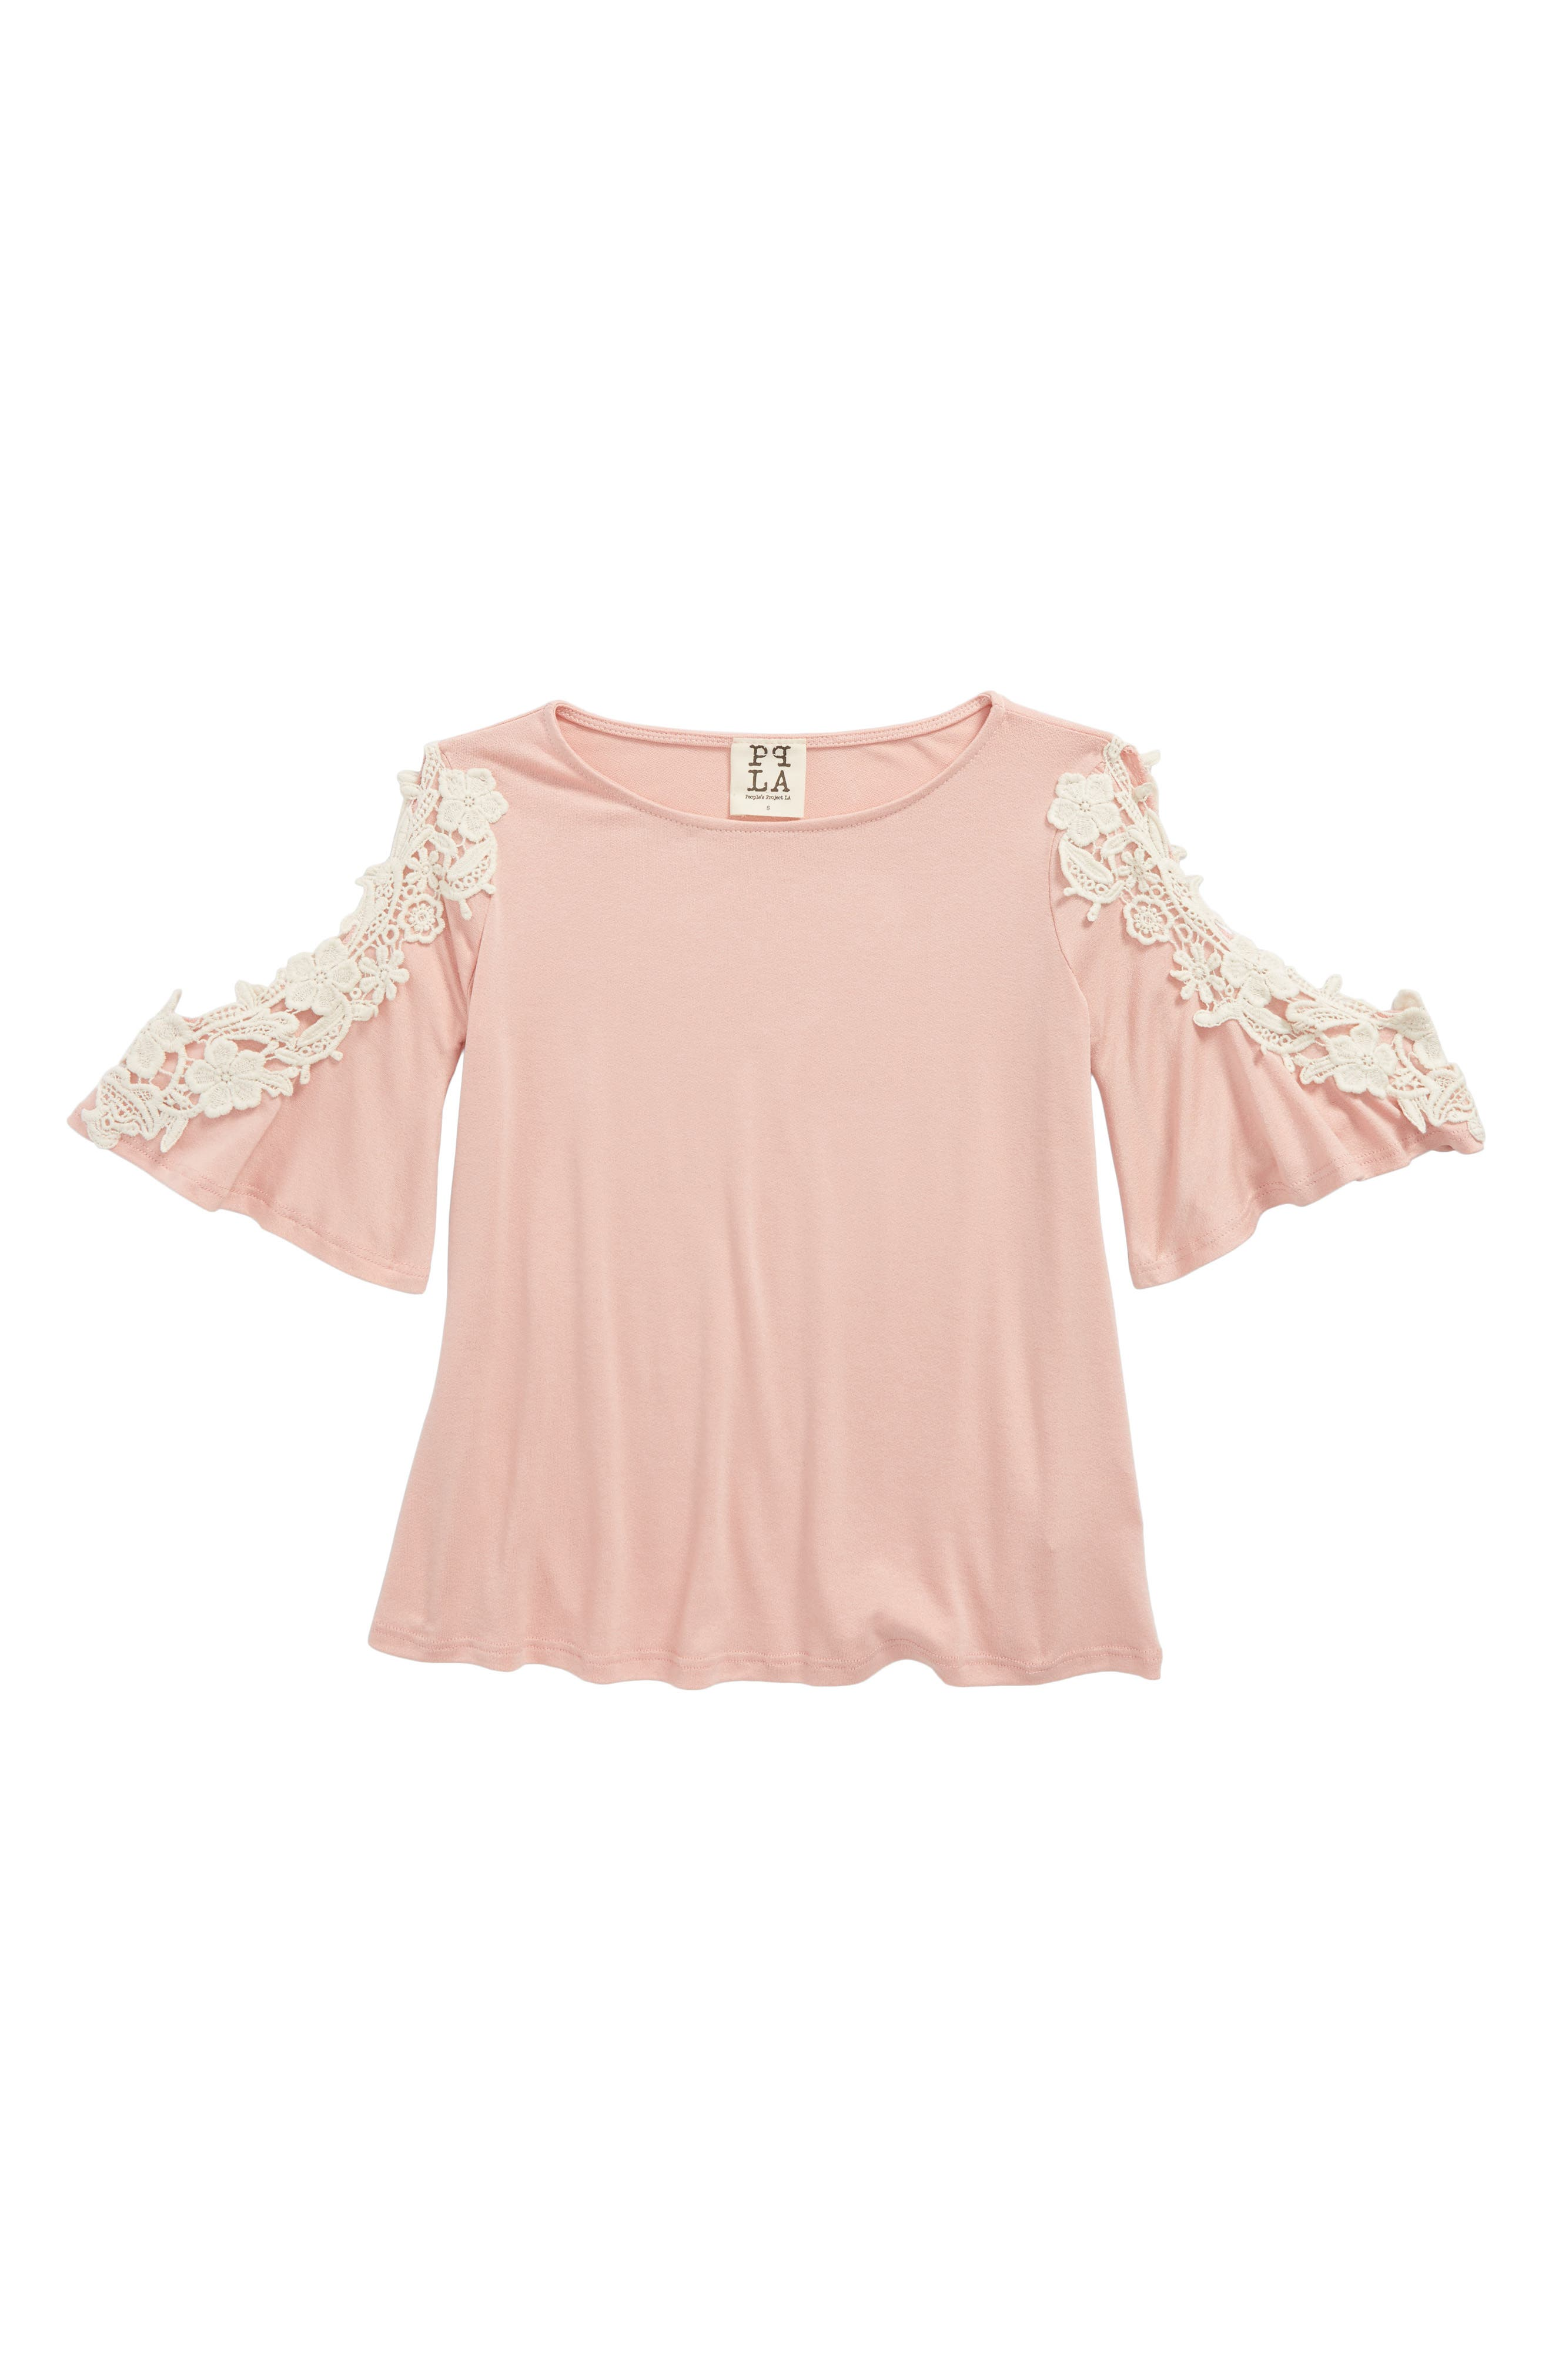 PPLA Penny Lace Cold Shoulder Top (Big Girls)